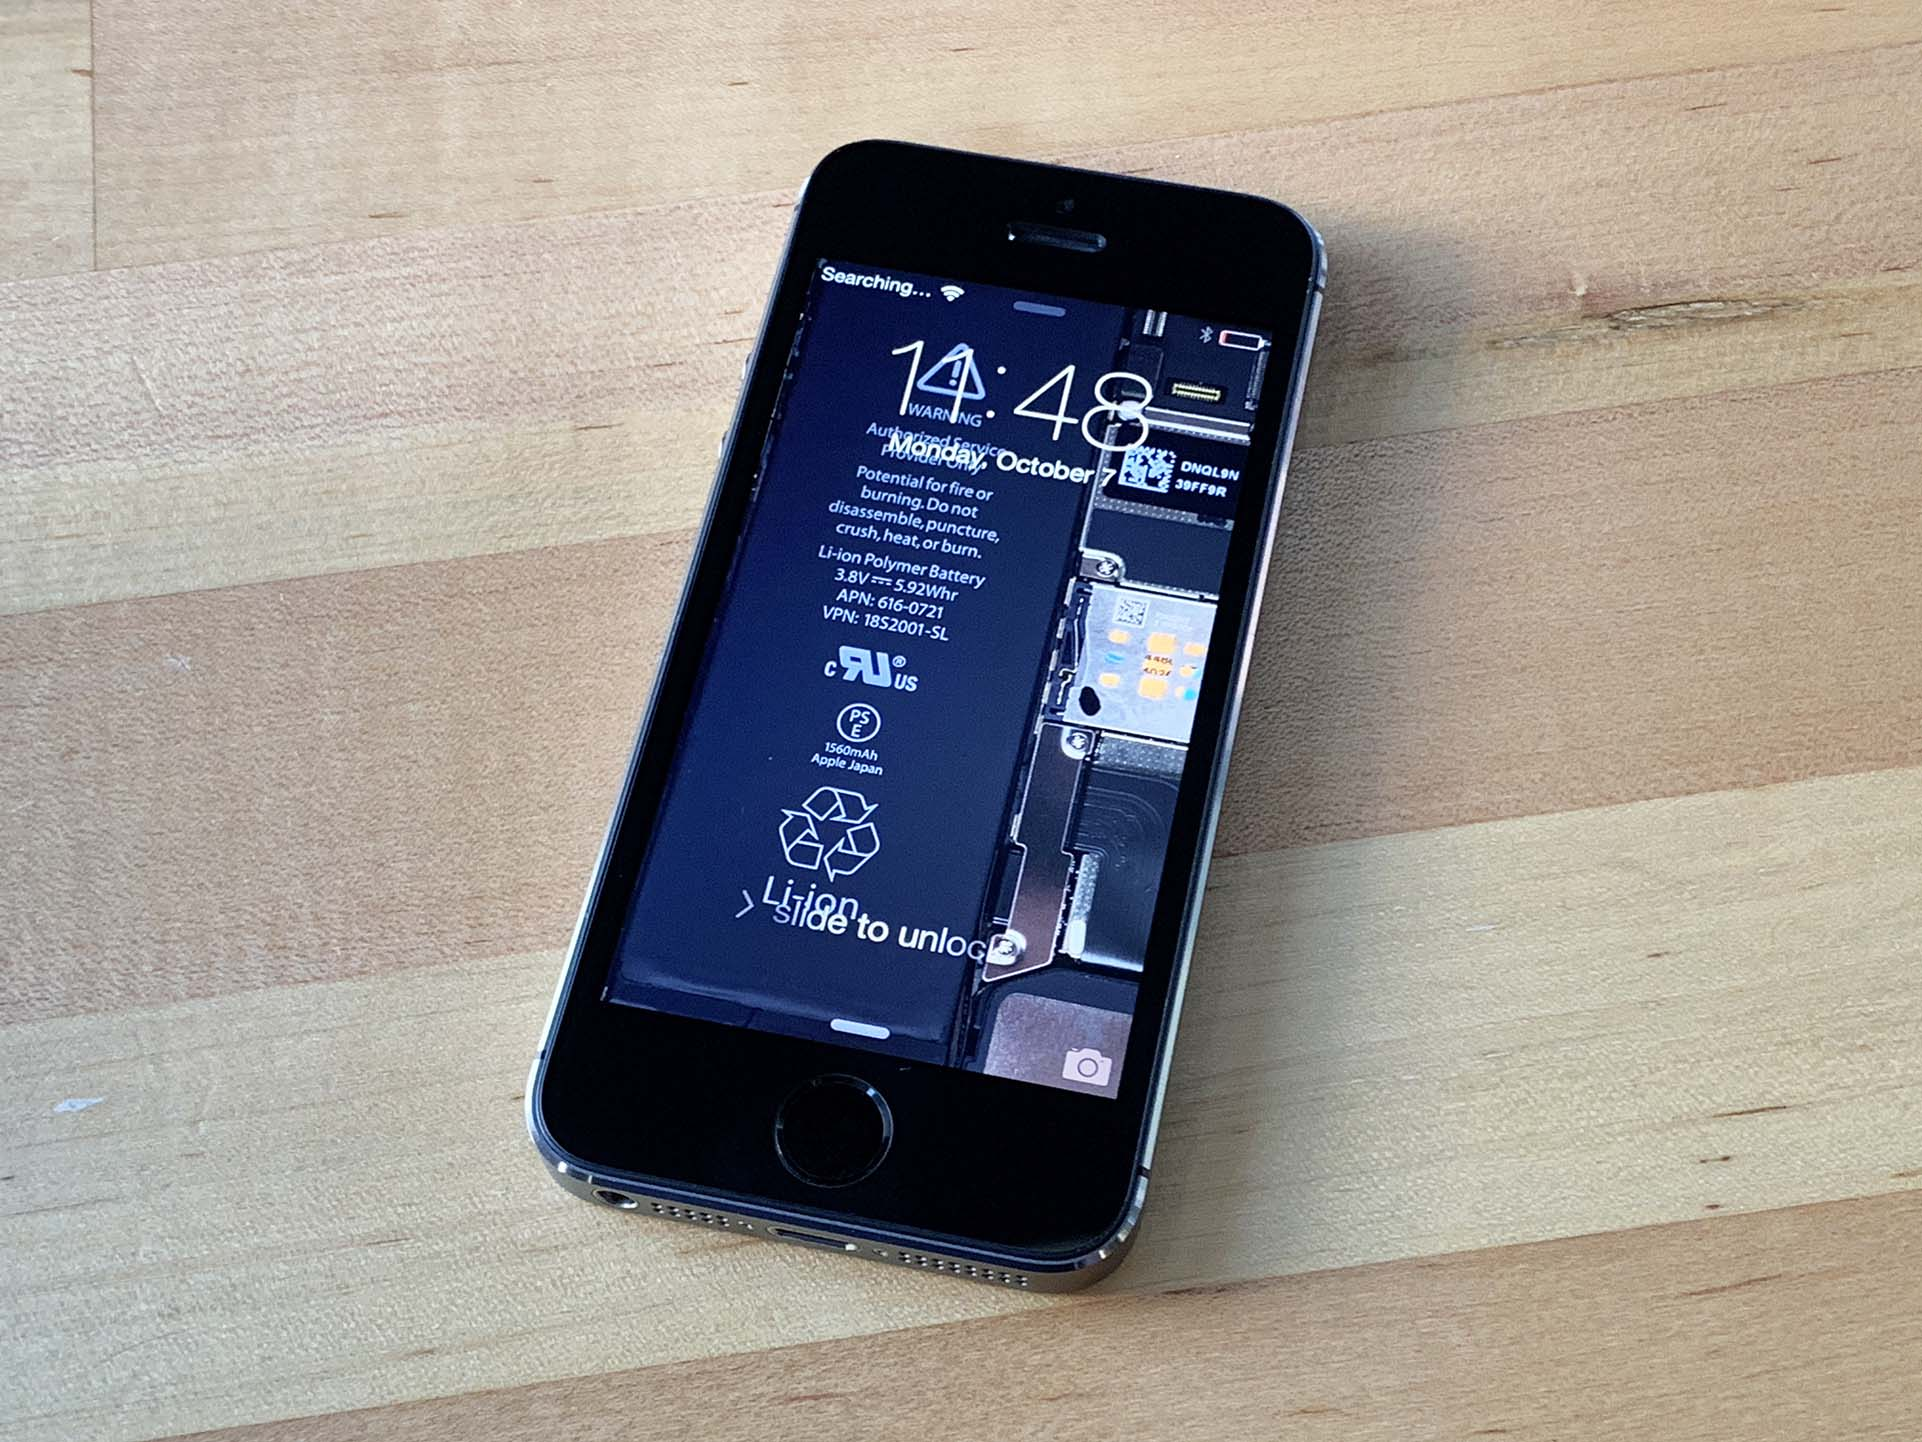 iPhone 5s teardown wallpaper in action